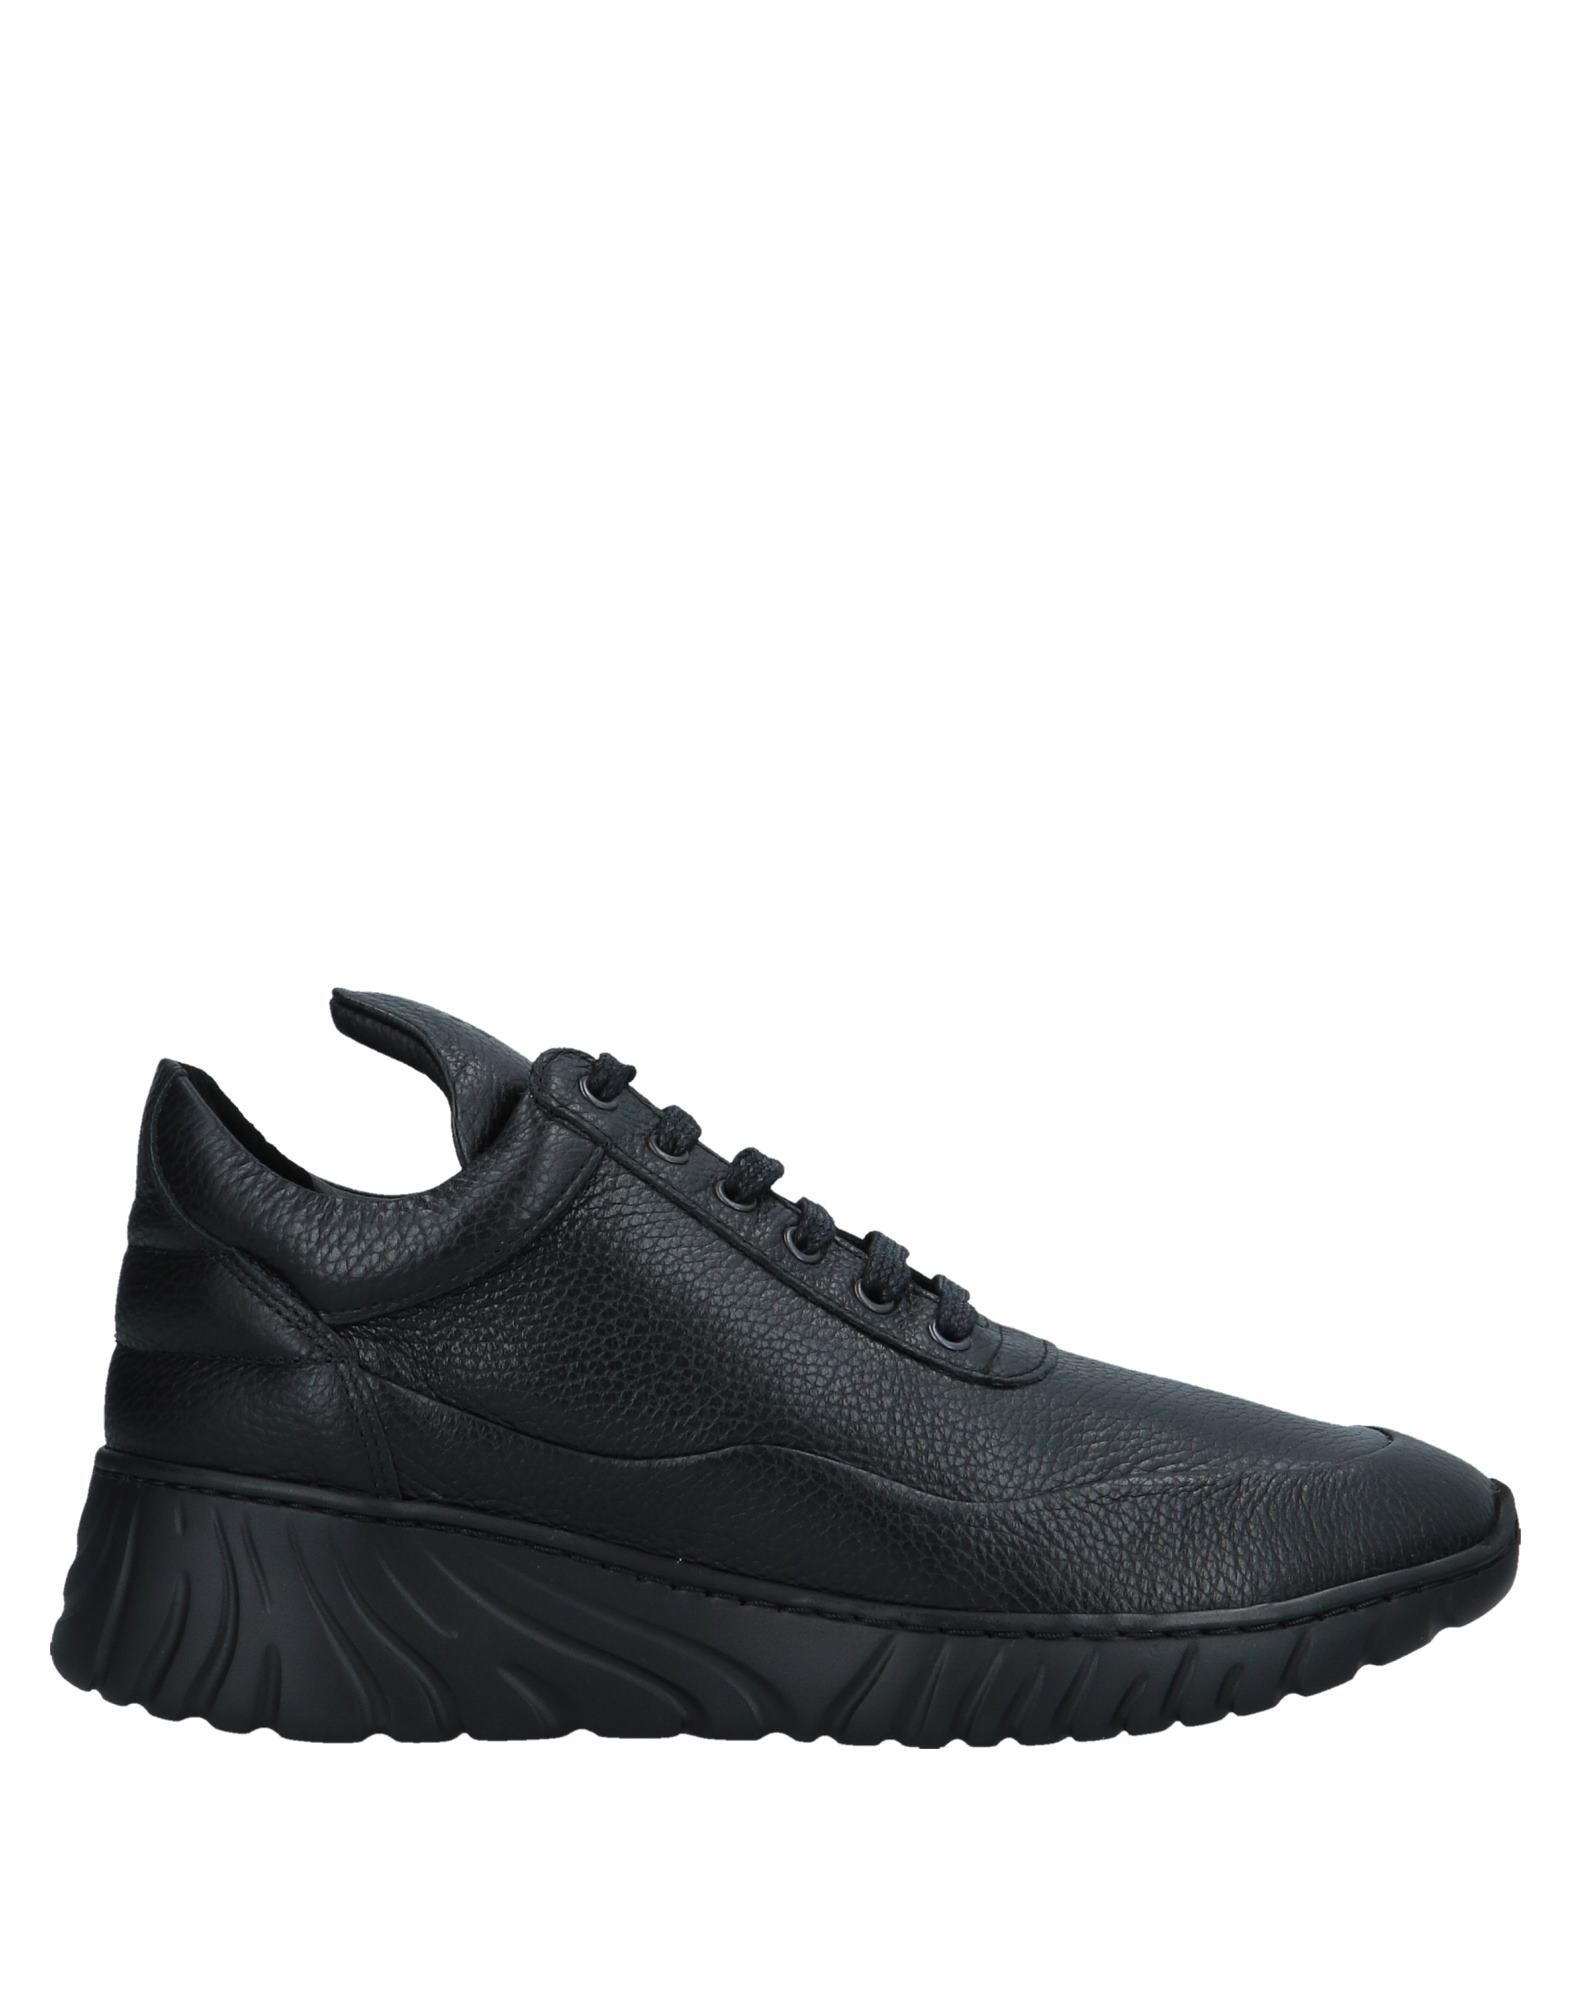 Sneakers Filling Pieces Homme - Sneakers Filling Pieces  Noir Chaussures casual sauvages